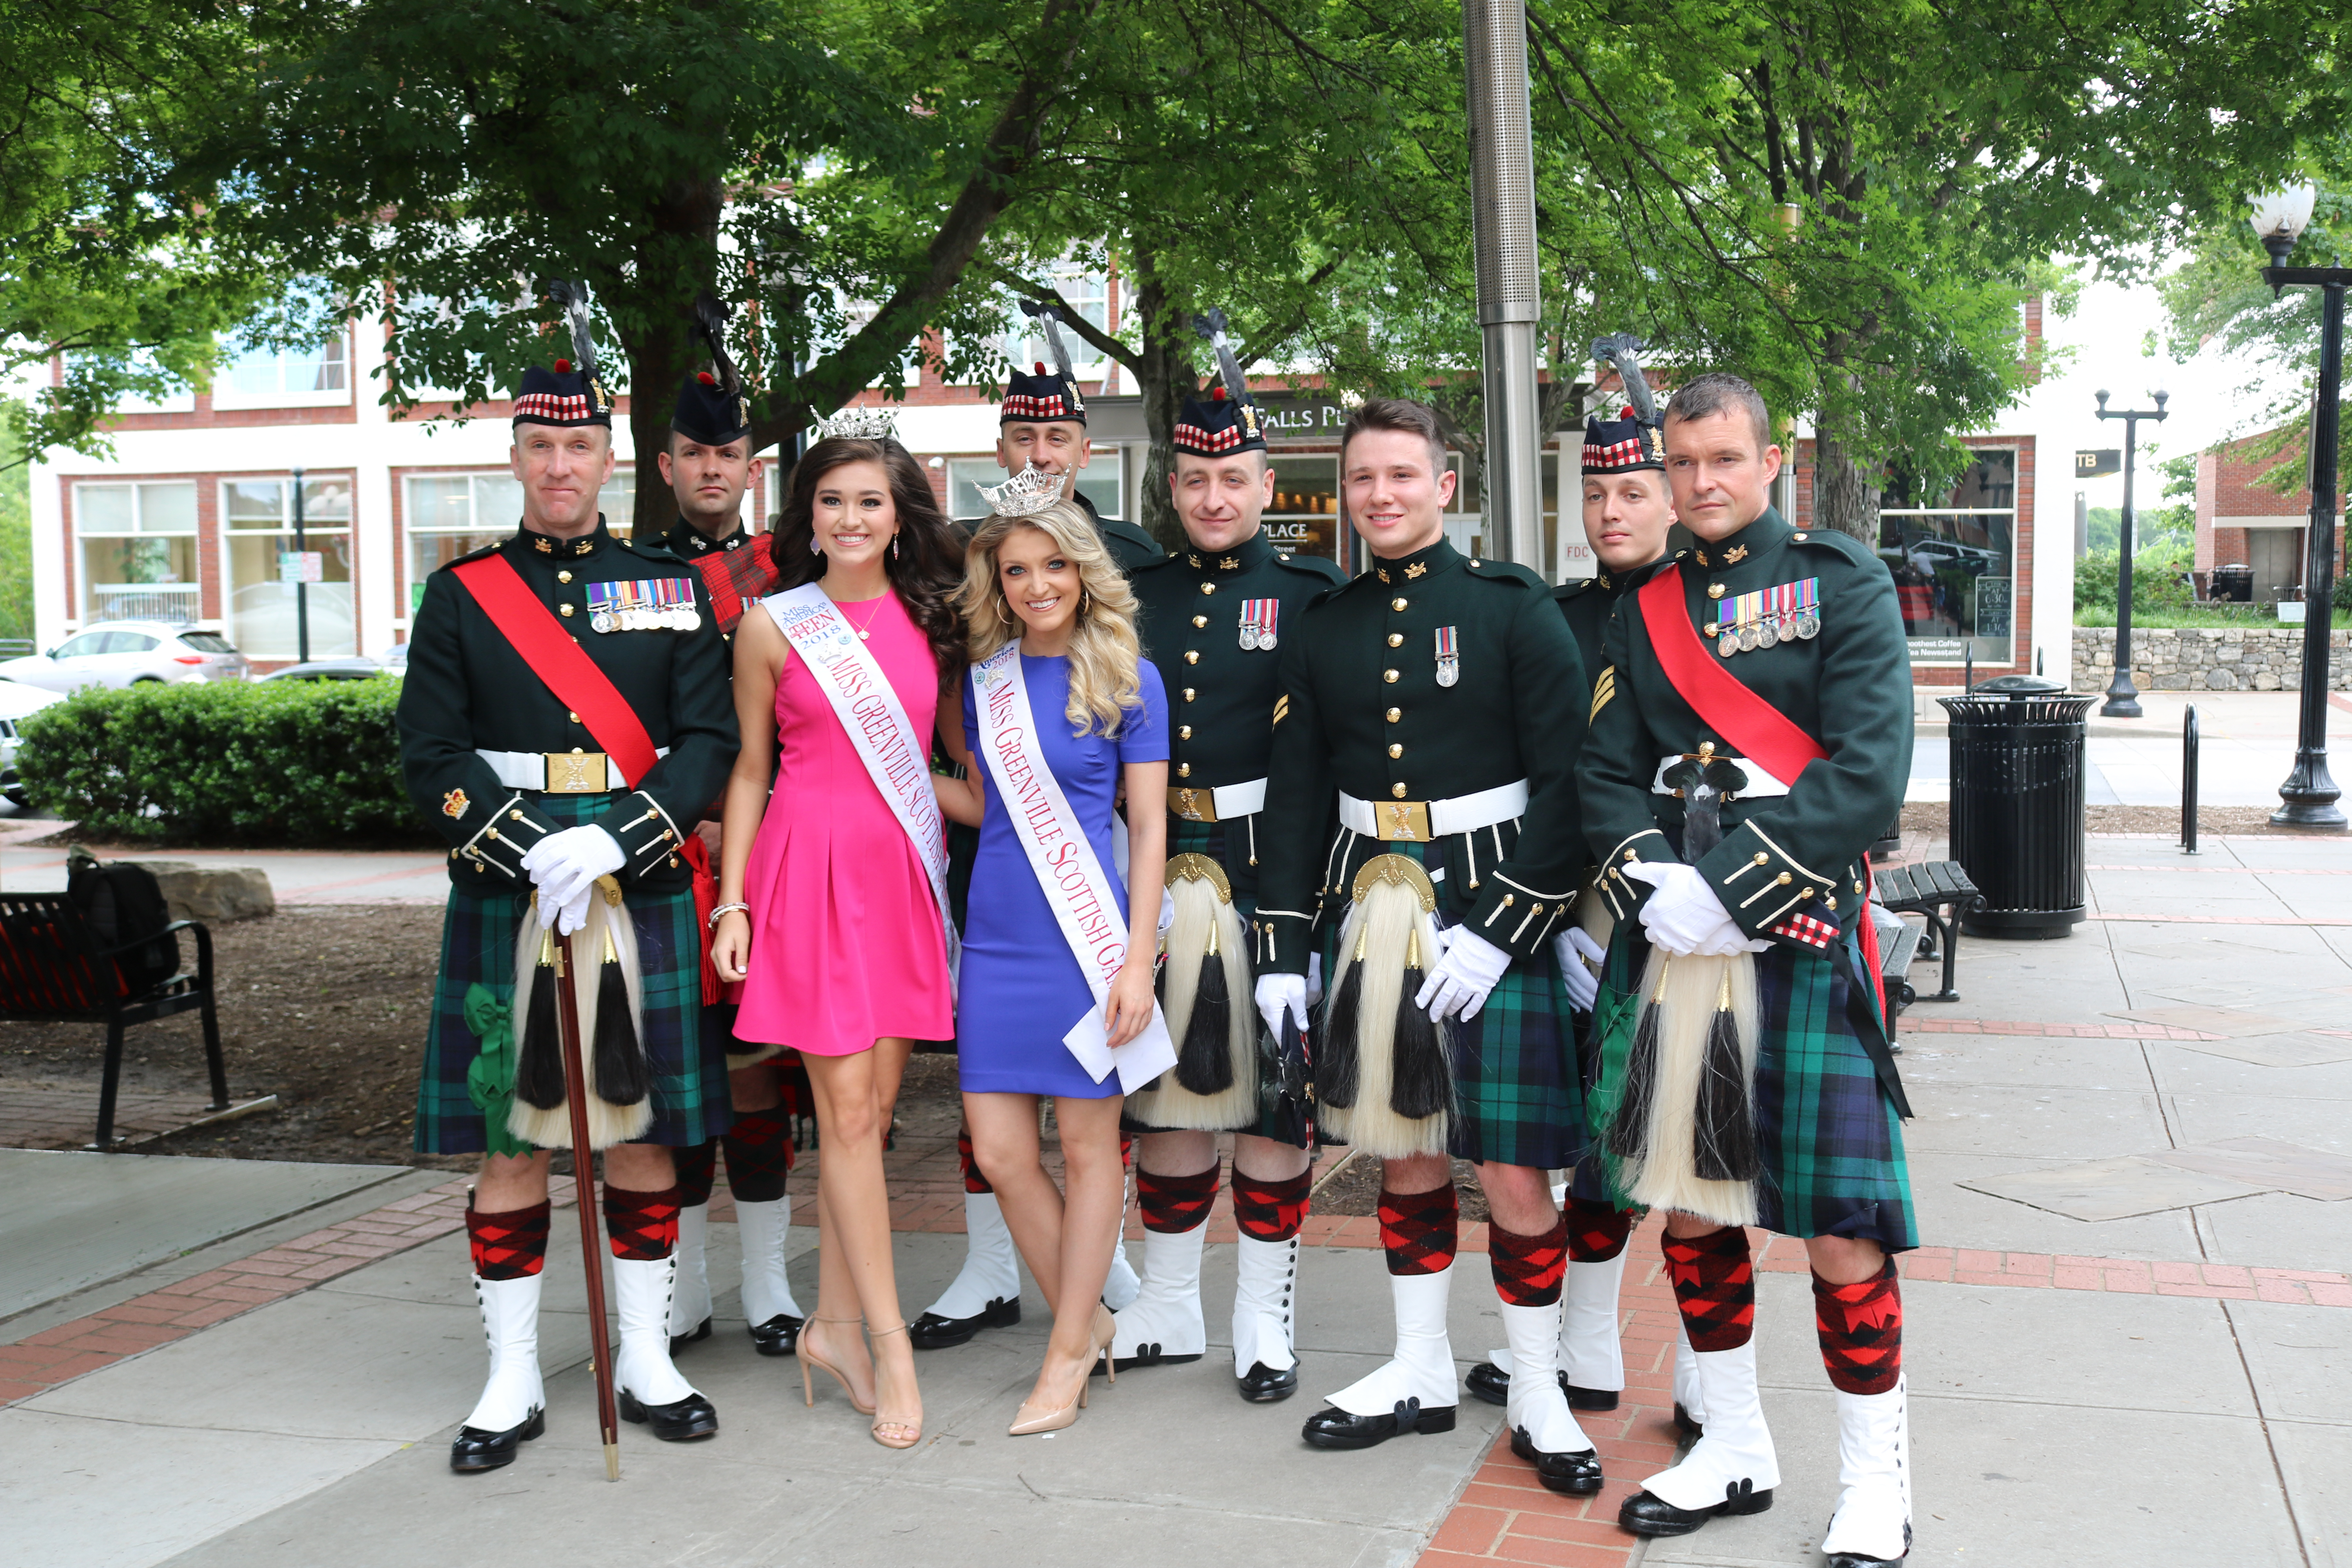 With the Royal Highland Fusiliers